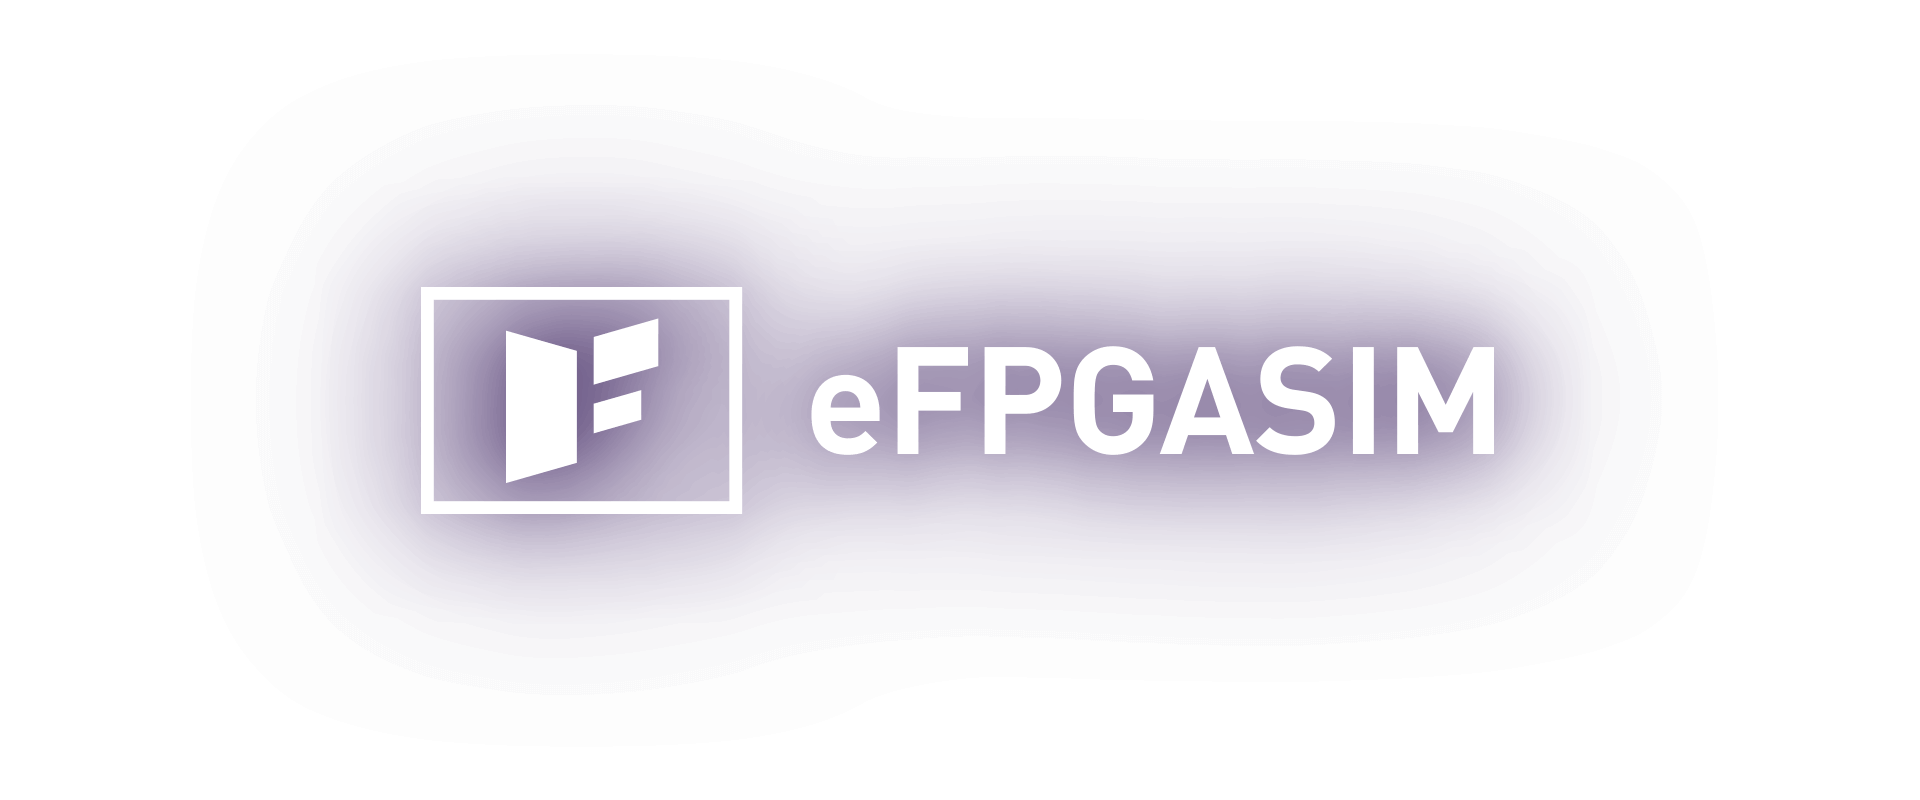 Fpga Simulator Prototyping Efpgasim Capture And Simulation Of Electrical Circuits The Actual Pragmatic Real Time On For Modern Electronic Systems